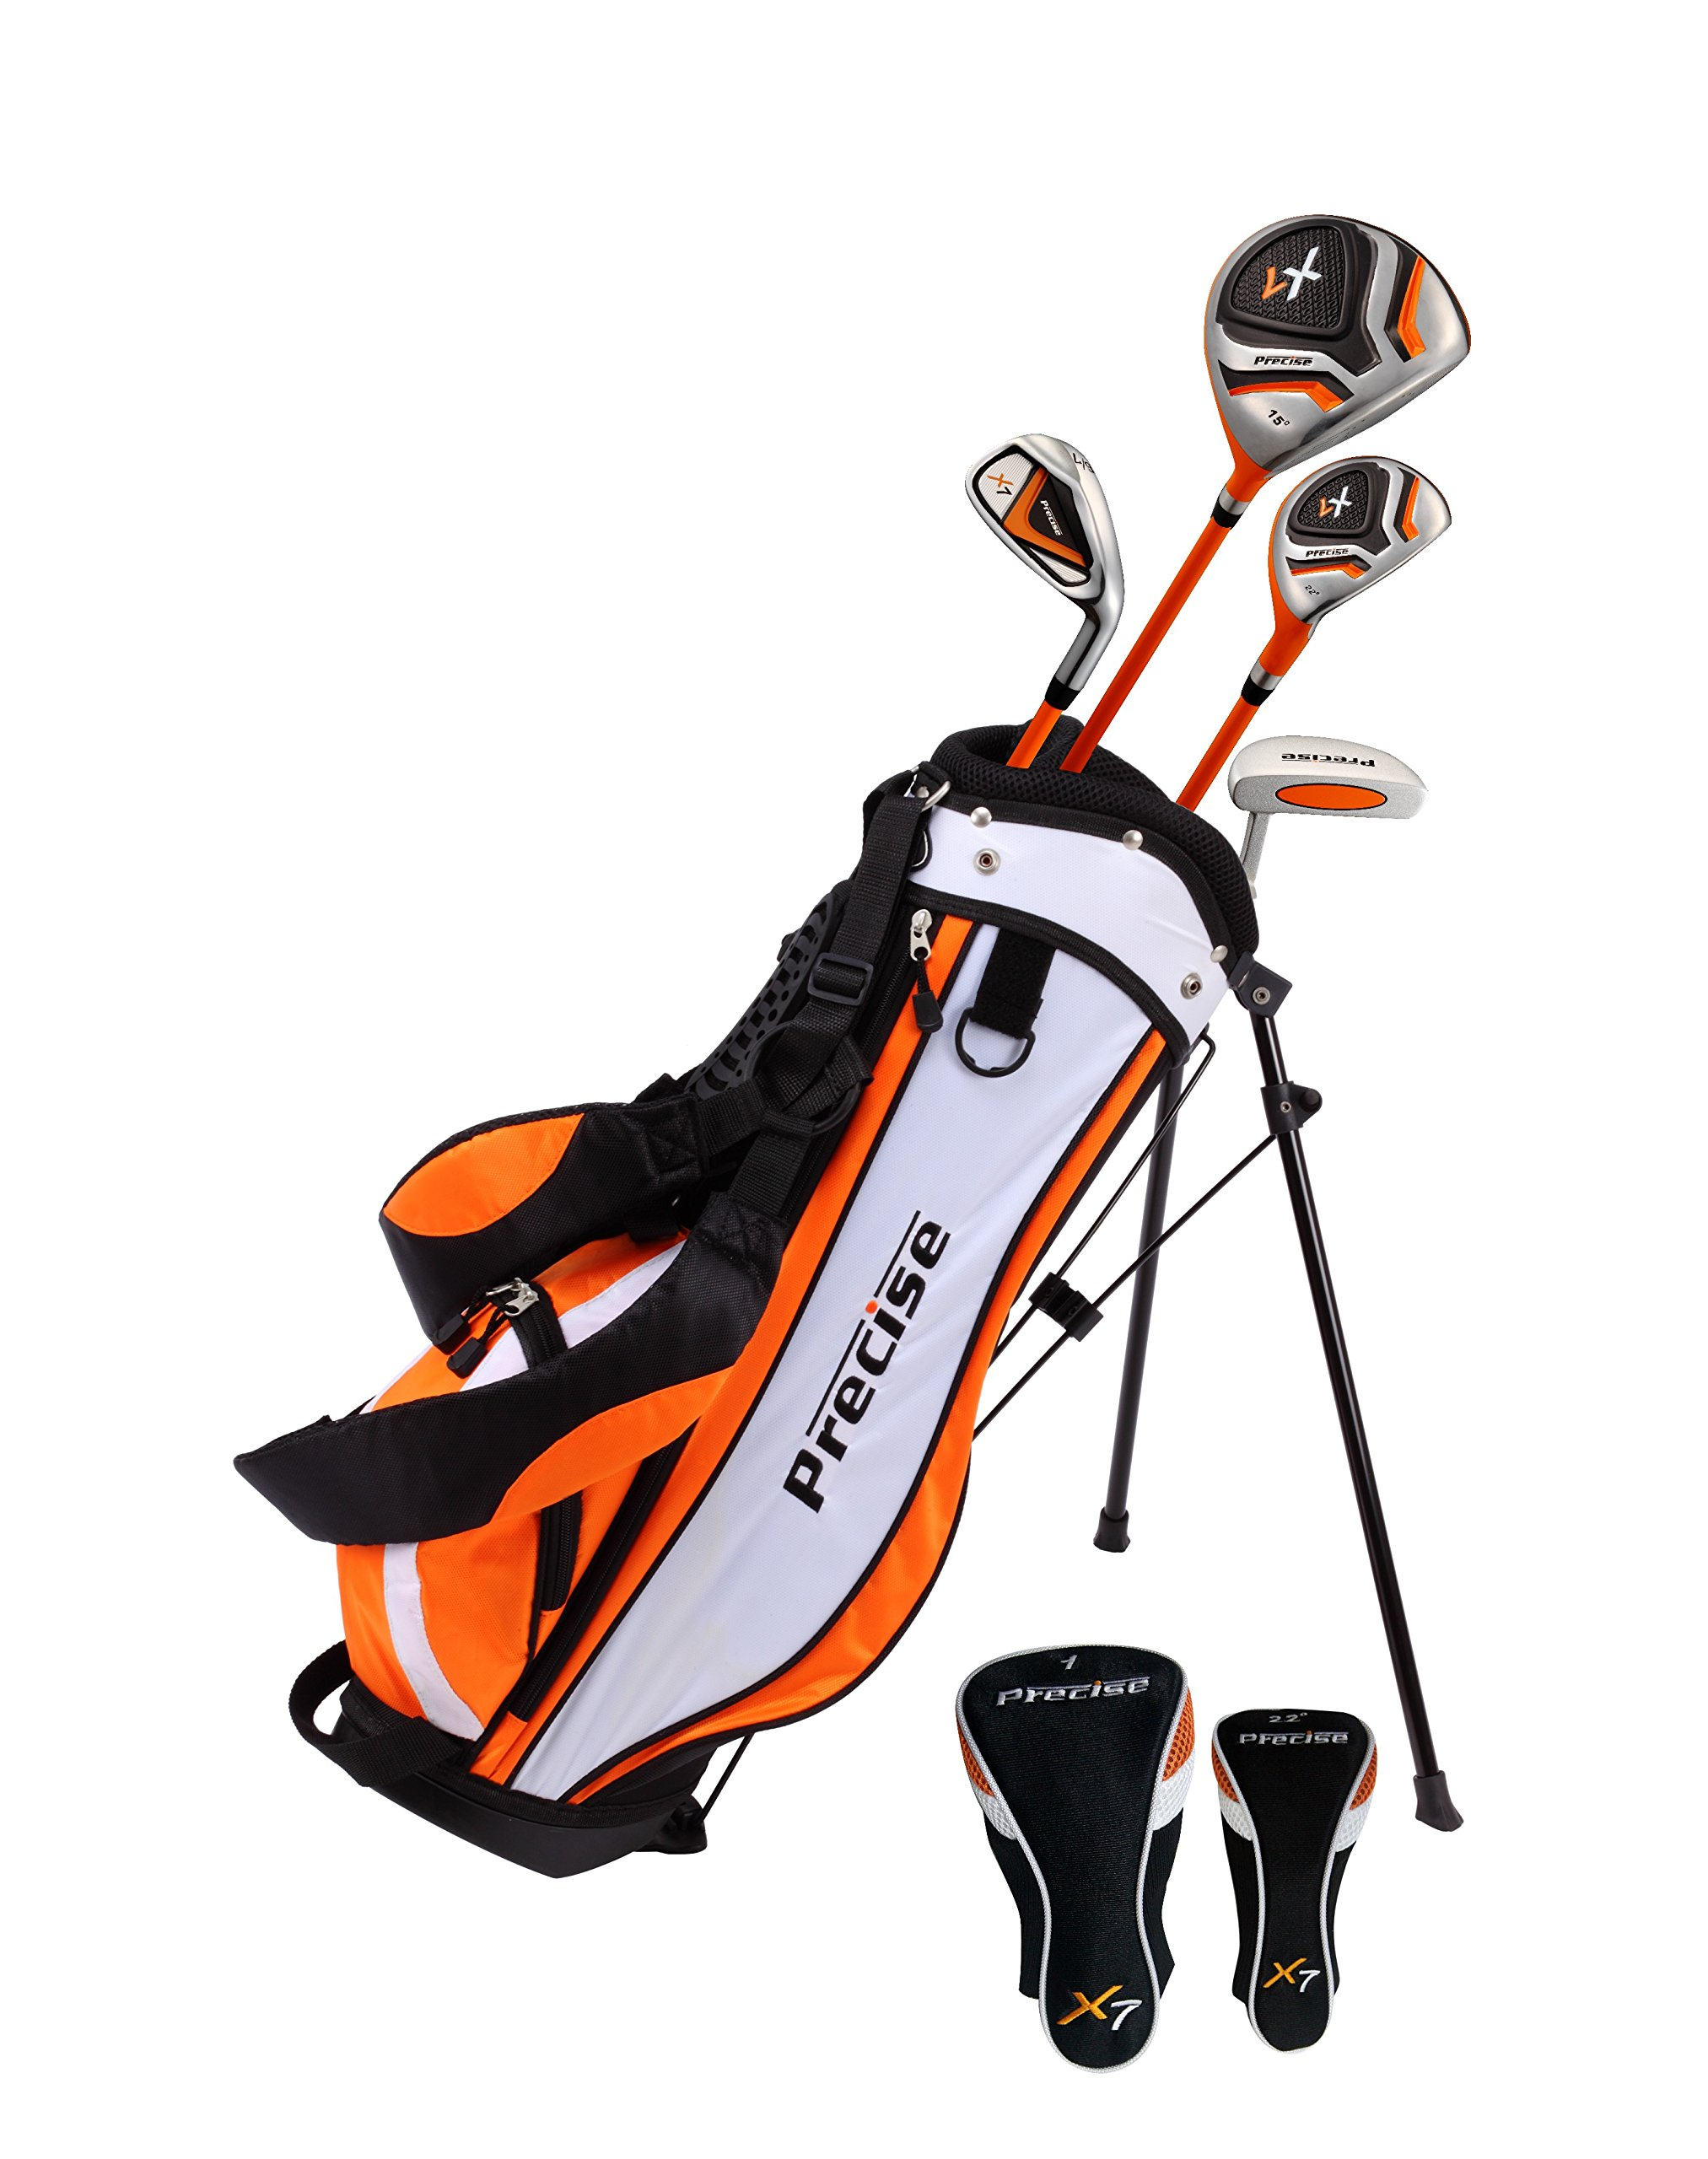 Distinctive Right Handed Junior Golf Club Set for Age 3 to 5 (Height 3' to 3'8'') Set Includes: Driver (15''), Hybrid Wood (22, 7 Iron, Putter, Bonus Stand Bag & 2 Headcovers by Precise